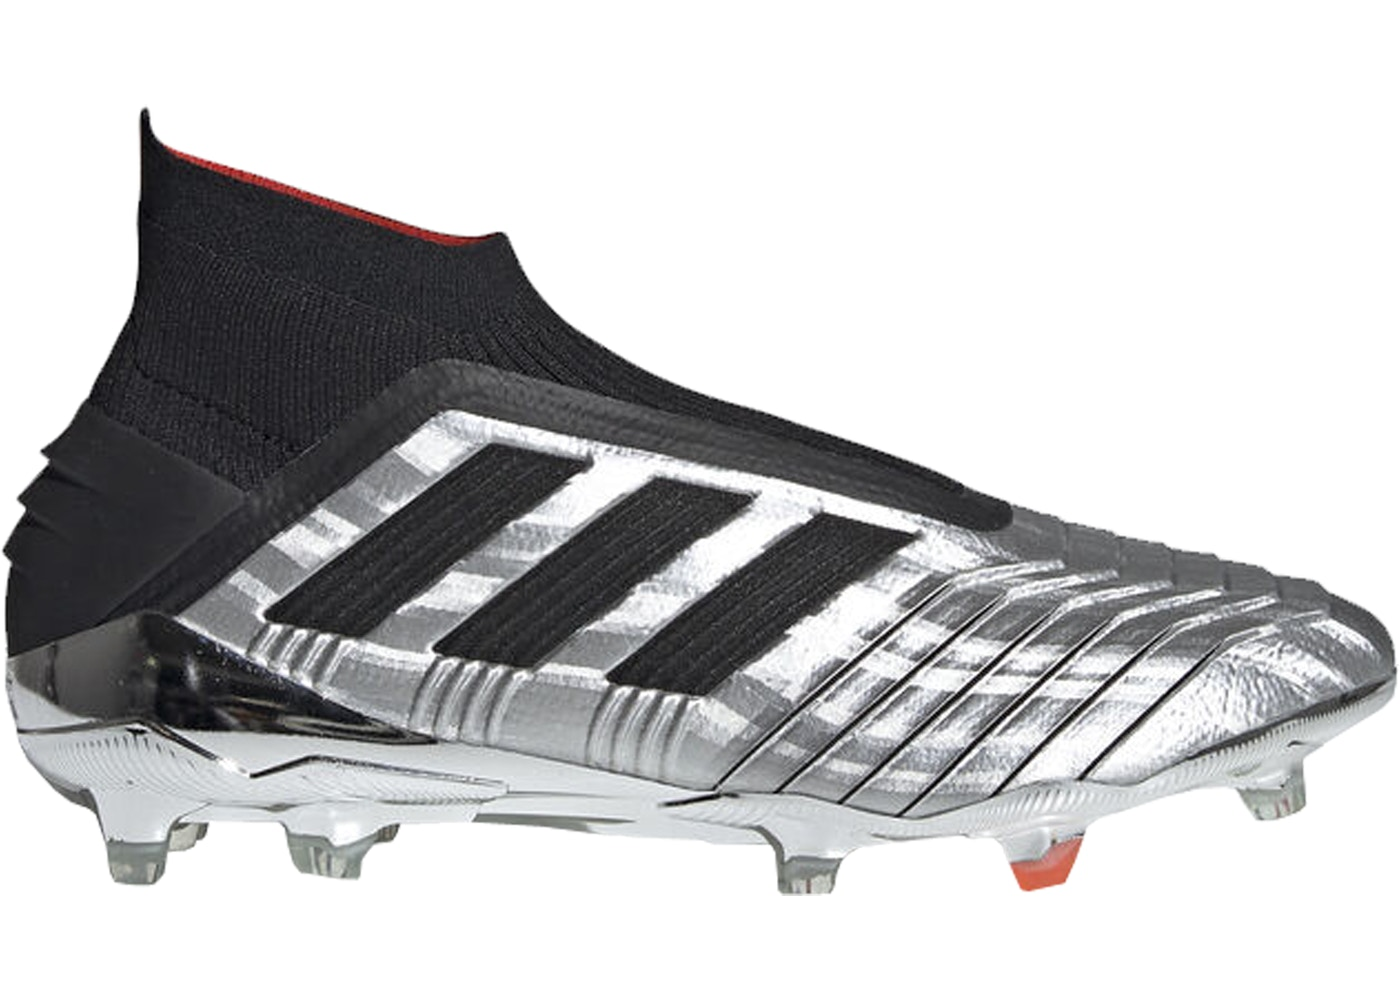 c8bc7d67 Sell. or Ask. Size 7. View All Bids. adidas Predator 19+ Firm Ground Cleat  Silver Black Red